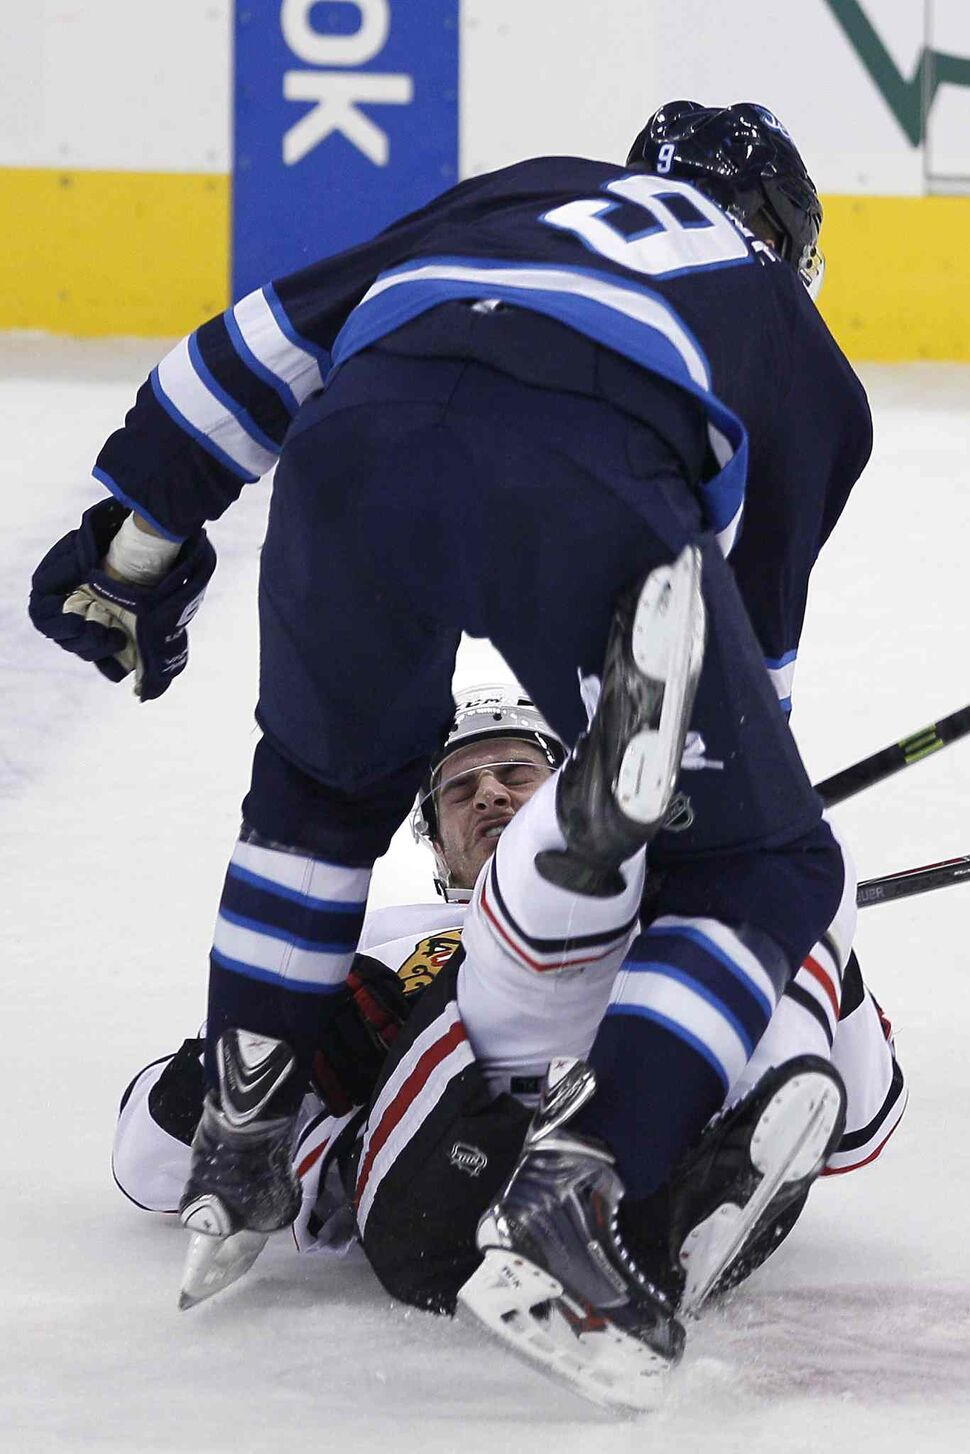 Winnipeg Jets' Evander Kane (9) takes down a member of the Chicago Blackhawks during the first period. (JOHN WOODS / THE CANADIAN PRESS)